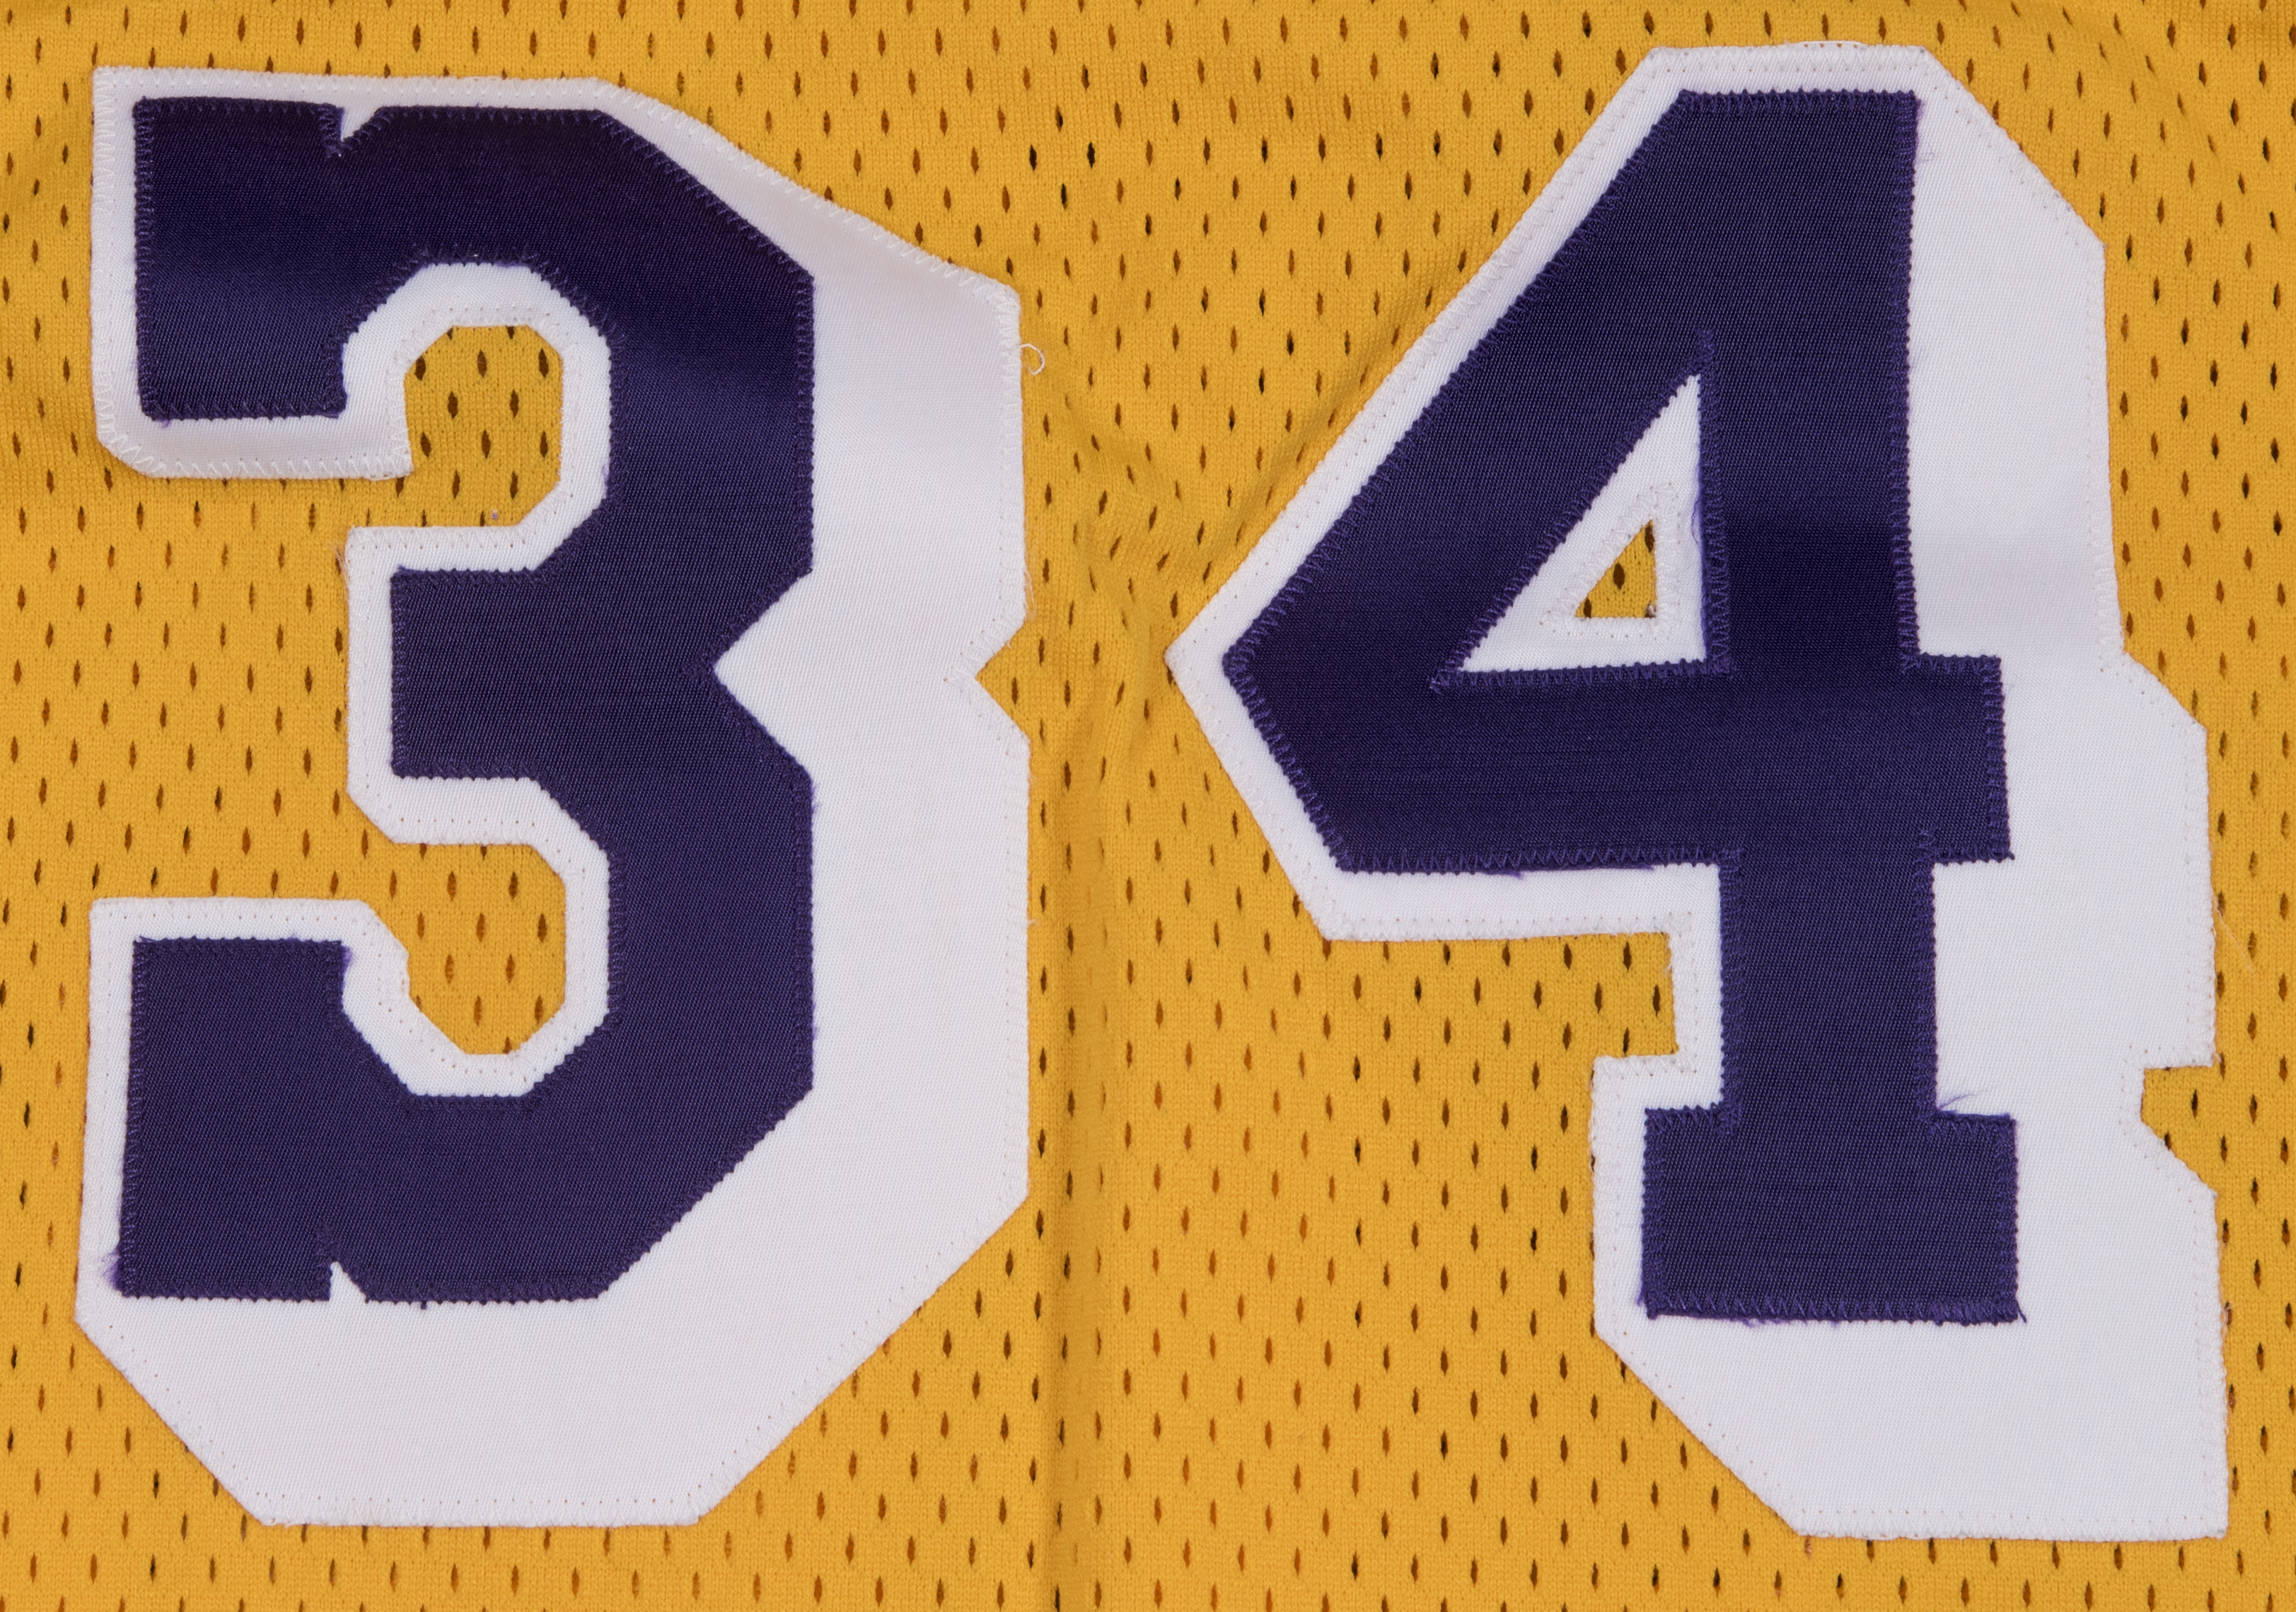 d1596d108 1996-97 Shaquille ONeal Game Used Los Angeles Lakers Home Jersey (DC  Sports). Hover to zoom. Prev Next